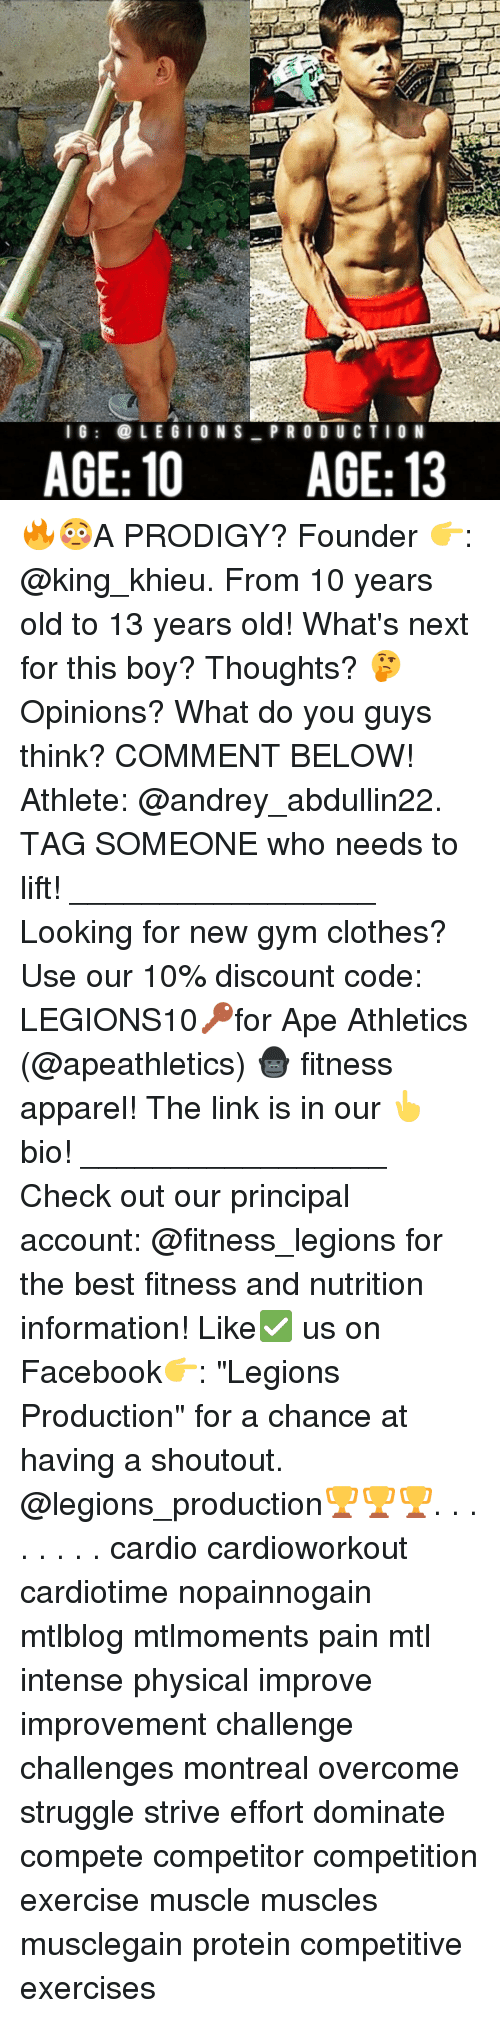 """physicality: l G  LEGION S  PRO DU CTION  AGE: 10 AGE: 13 🔥😳A PRODIGY? Founder 👉: @king_khieu. From 10 years old to 13 years old! What's next for this boy? Thoughts? 🤔Opinions? What do you guys think? COMMENT BELOW! Athlete: @andrey_abdullin22. TAG SOMEONE who needs to lift! _________________ Looking for new gym clothes? Use our 10% discount code: LEGIONS10🔑for Ape Athletics (@apeathletics) 🦍 fitness apparel! The link is in our 👆 bio! _________________ Check out our principal account: @fitness_legions for the best fitness and nutrition information! Like✅ us on Facebook👉: """"Legions Production"""" for a chance at having a shoutout. @legions_production🏆🏆🏆. . . . . . . . cardio cardioworkout cardiotime nopainnogain mtlblog mtlmoments pain mtl intense physical improve improvement challenge challenges montreal overcome struggle strive effort dominate compete competitor competition exercise muscle muscles musclegain protein competitive exercises"""